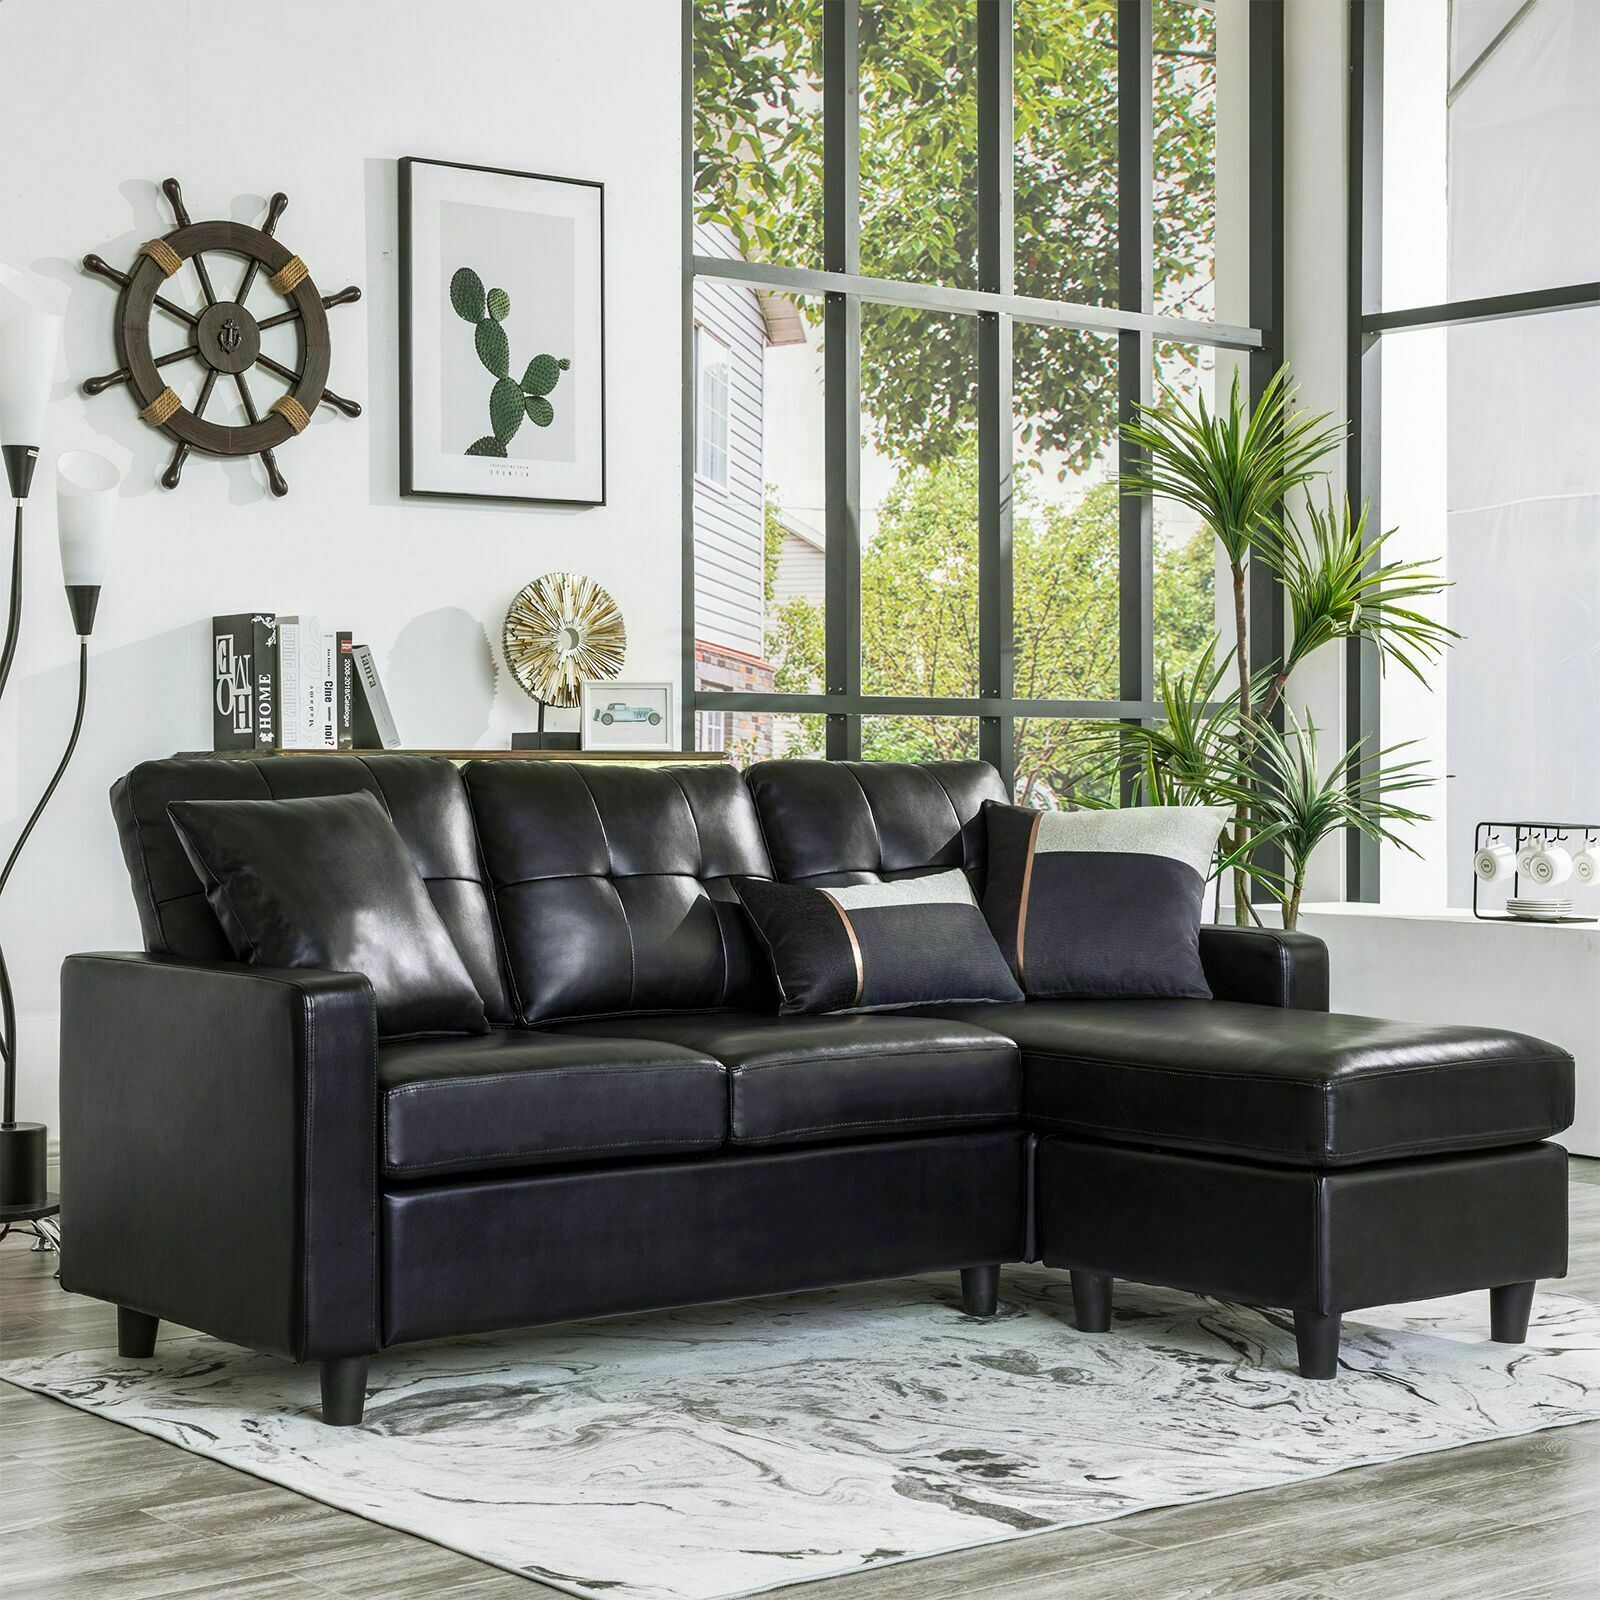 Black Faux Leather Sectional Sofa L Shaped Couch W Reversible Chaise Small Space Sofas Living Room Ideas Of Sofas Li In 2020 Living Room Sofa Sofas For Small Spaces